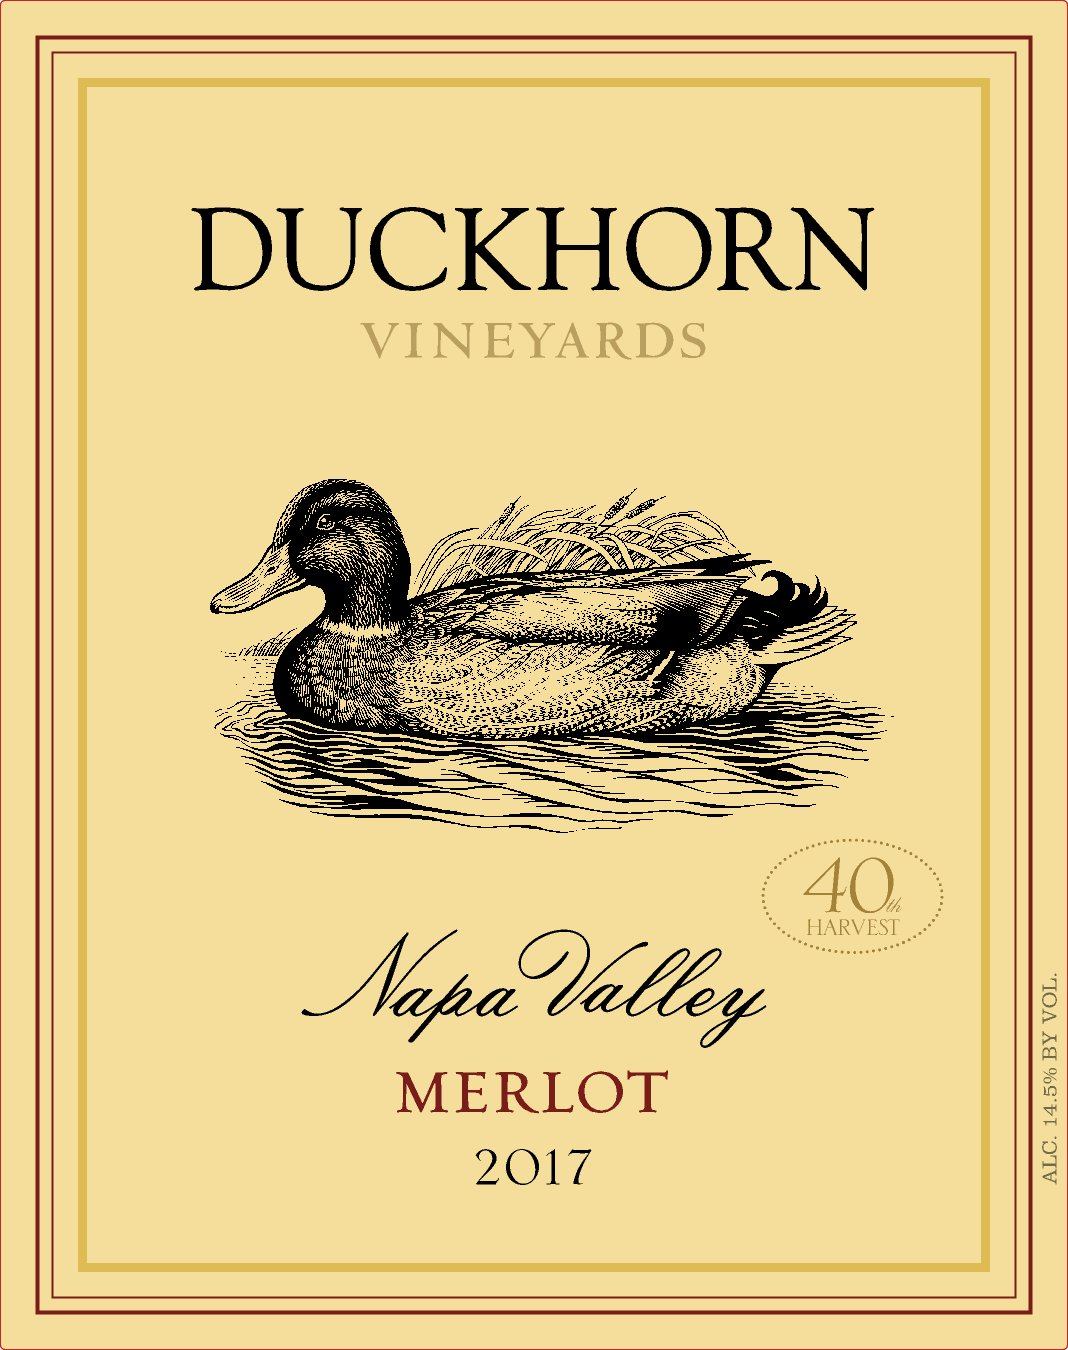 Duckhorn Merlot 40th Harvest